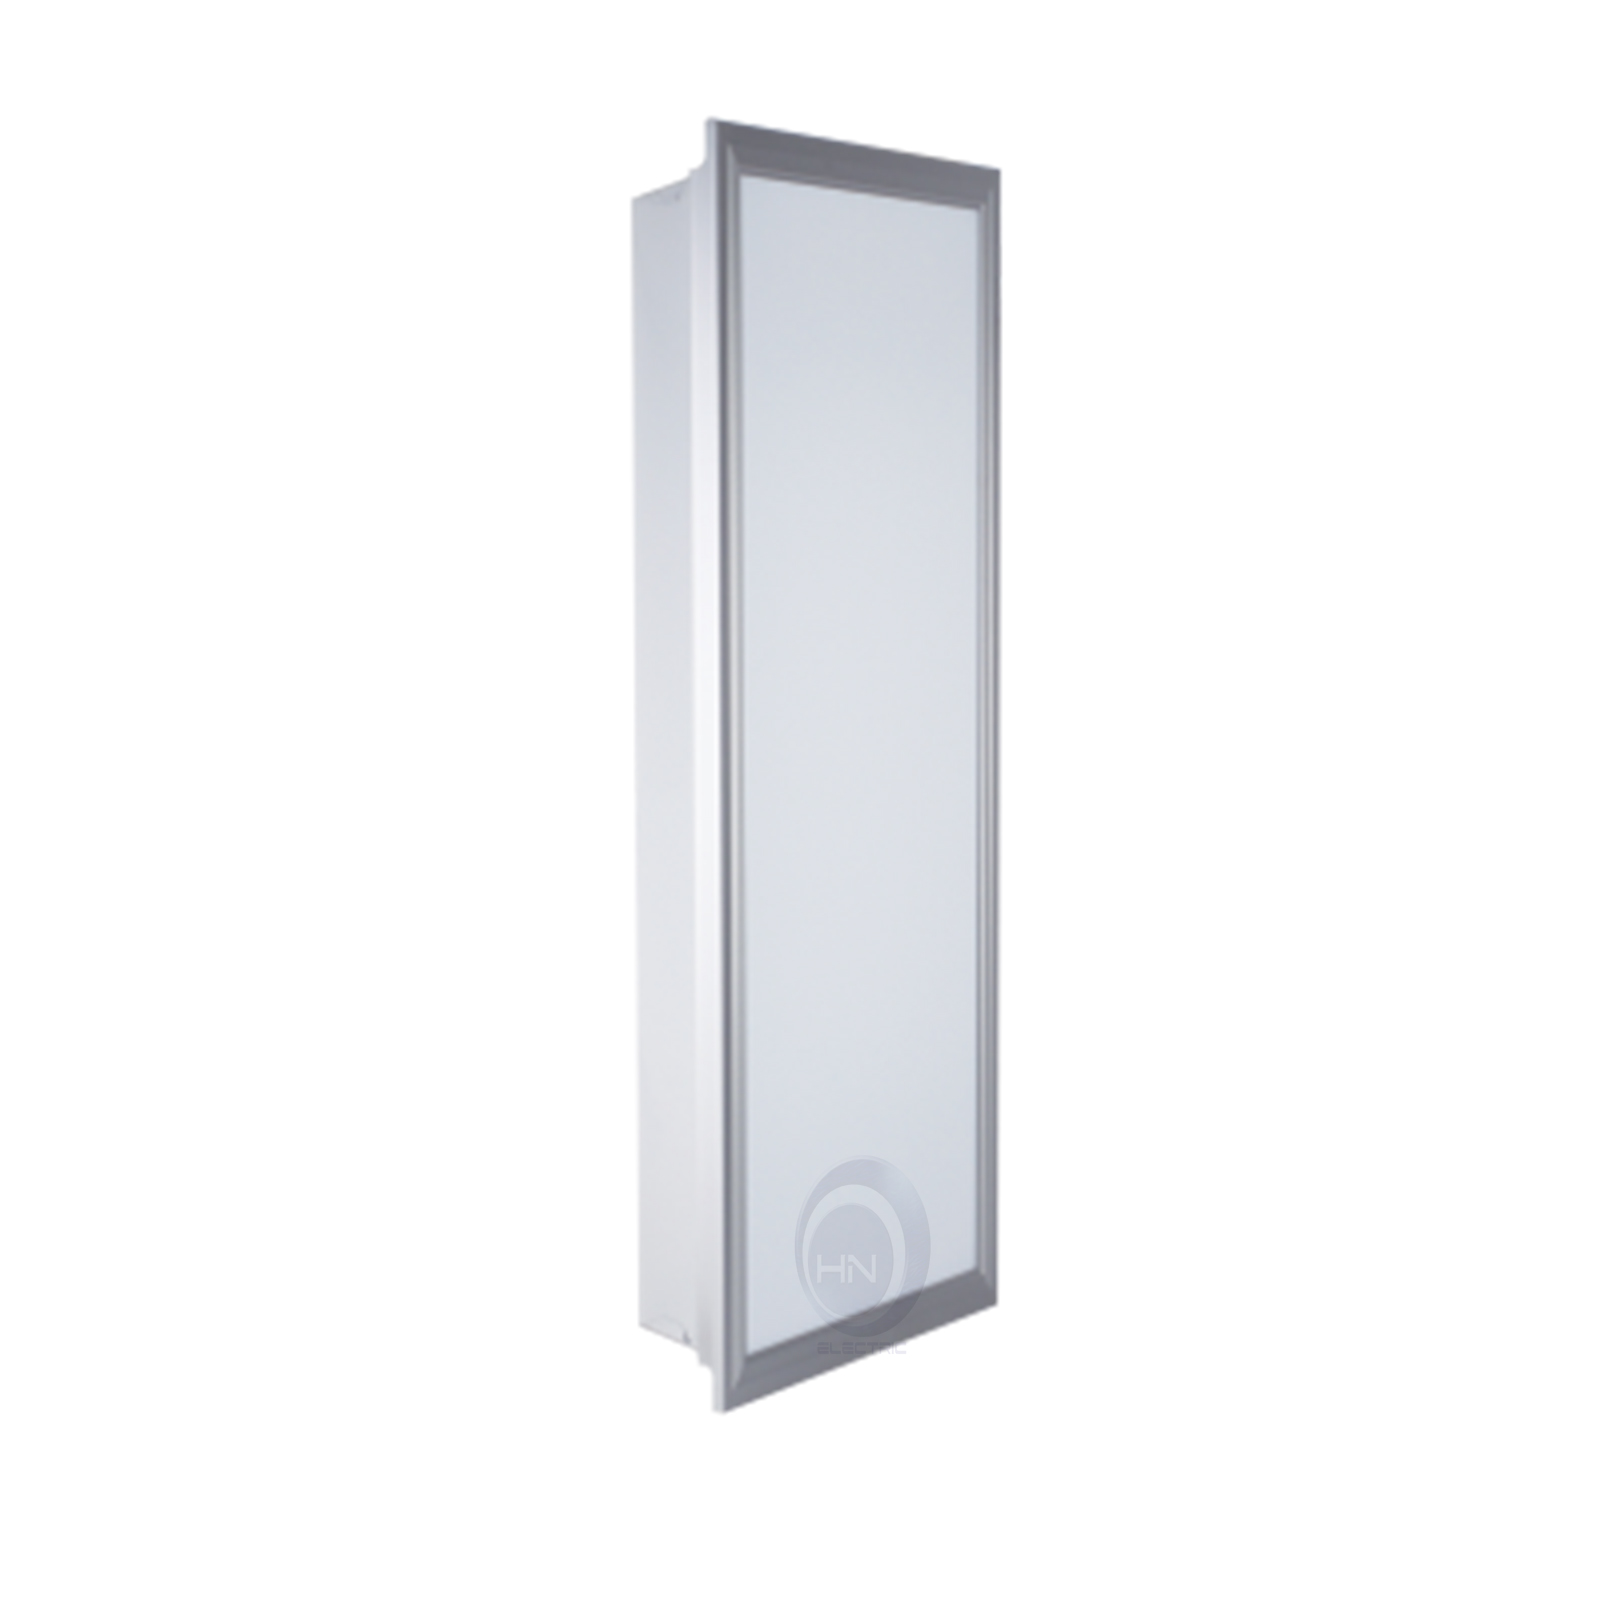 Đèn Led Panel hộp 1200x600x60mm KingLed